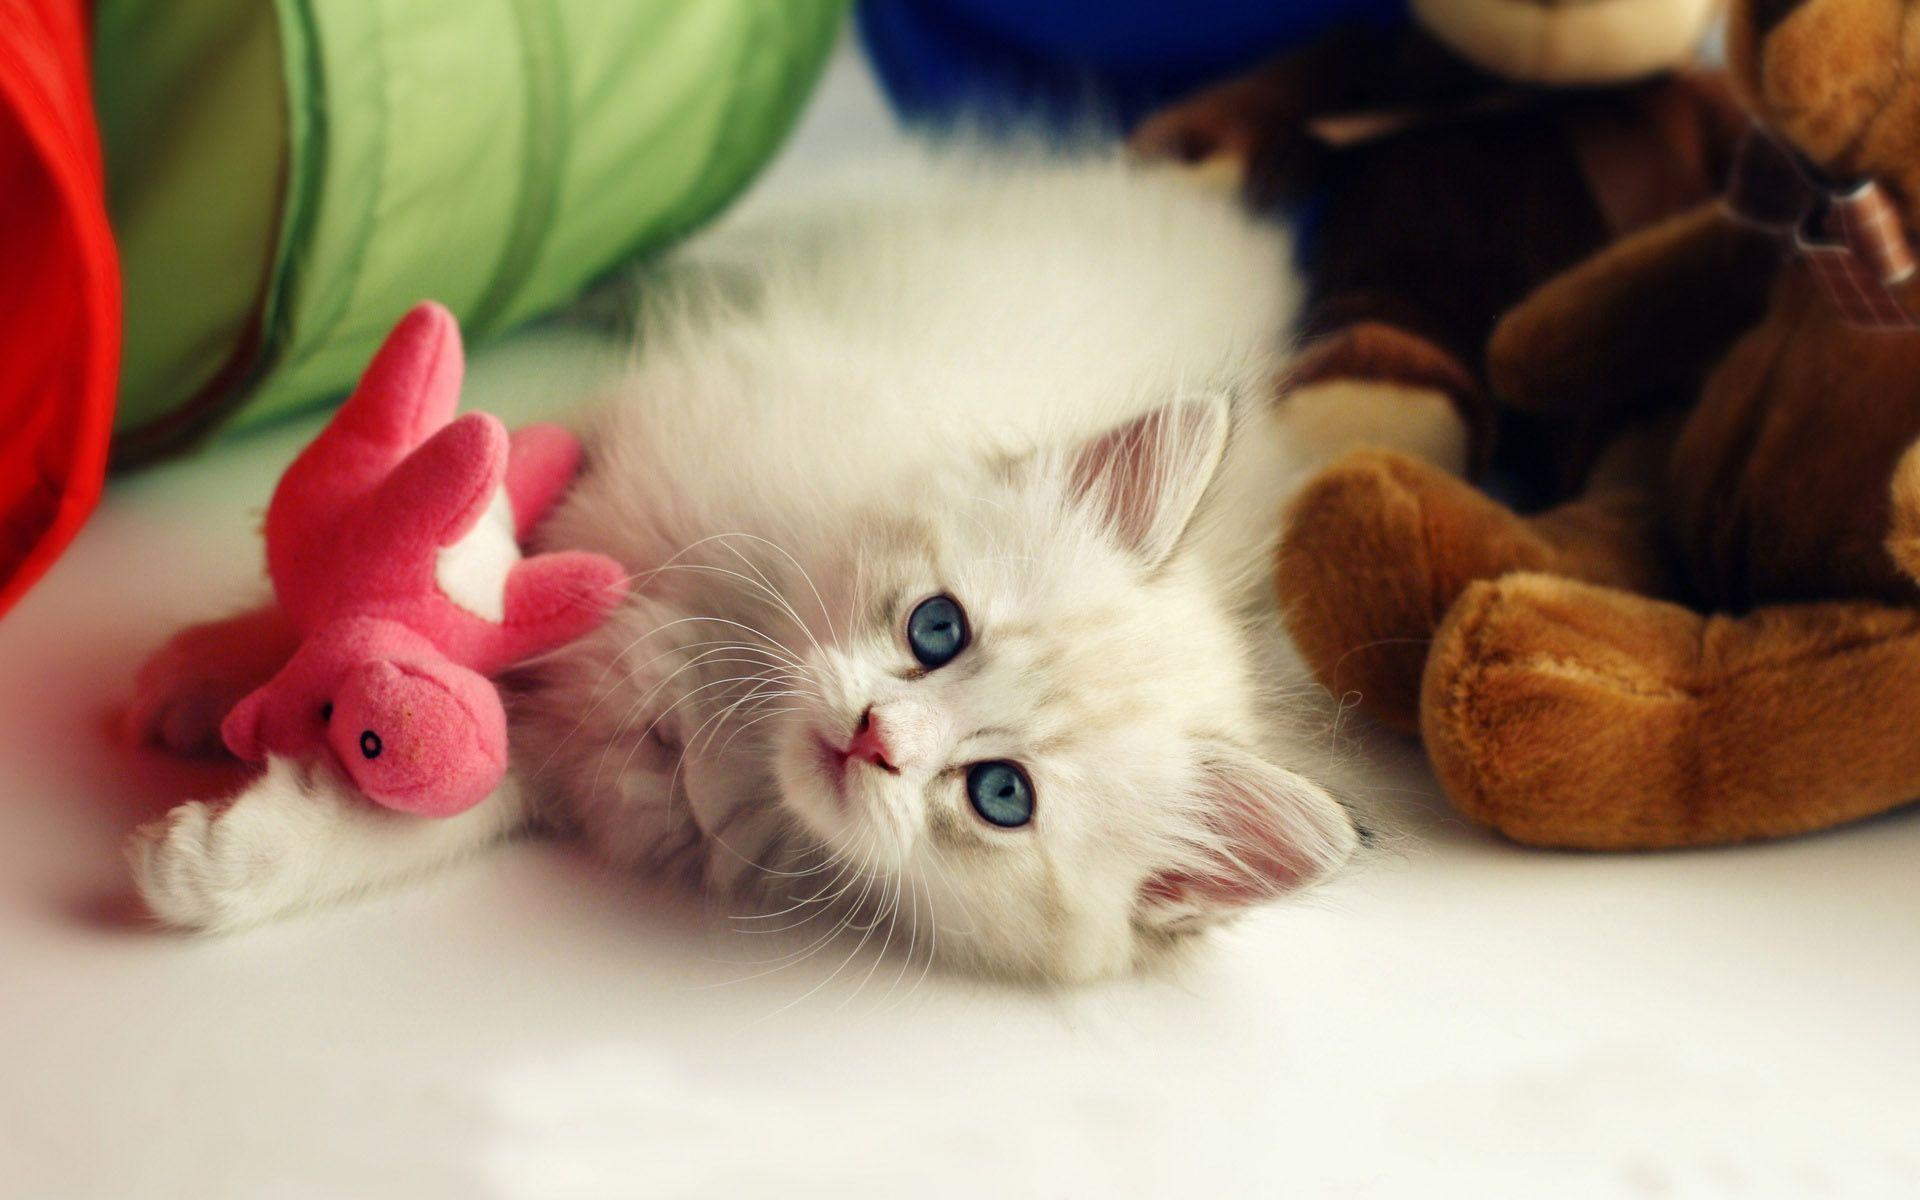 Cute Wallpapers For Mobile: Cute Pets Wallpapers